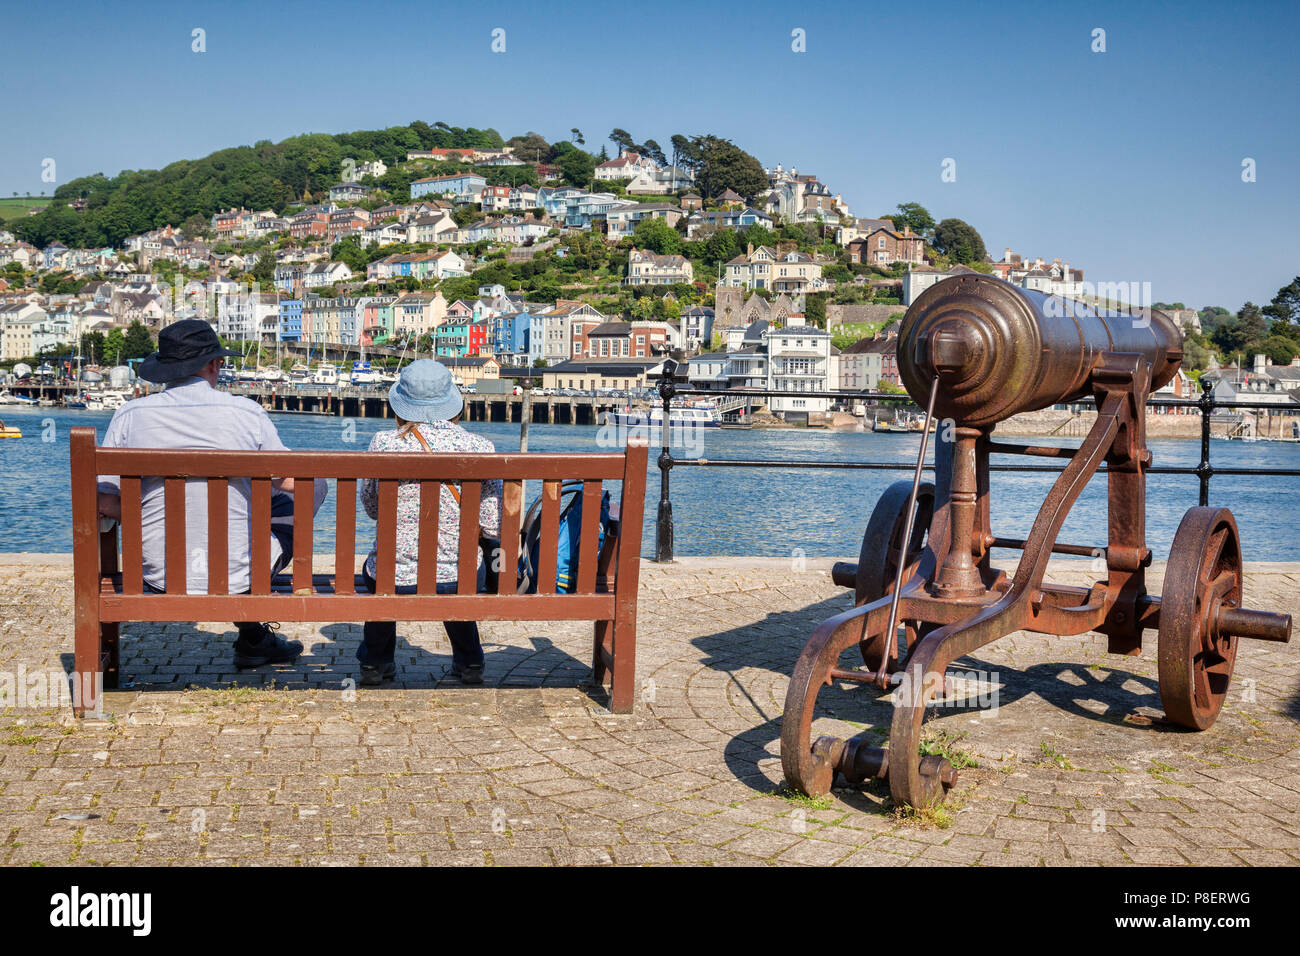 23 May 2018: Dartmouth, Devon, UK - Couple sitting on a bench beside an old cannon, looking out over the River Dart. - Stock Image